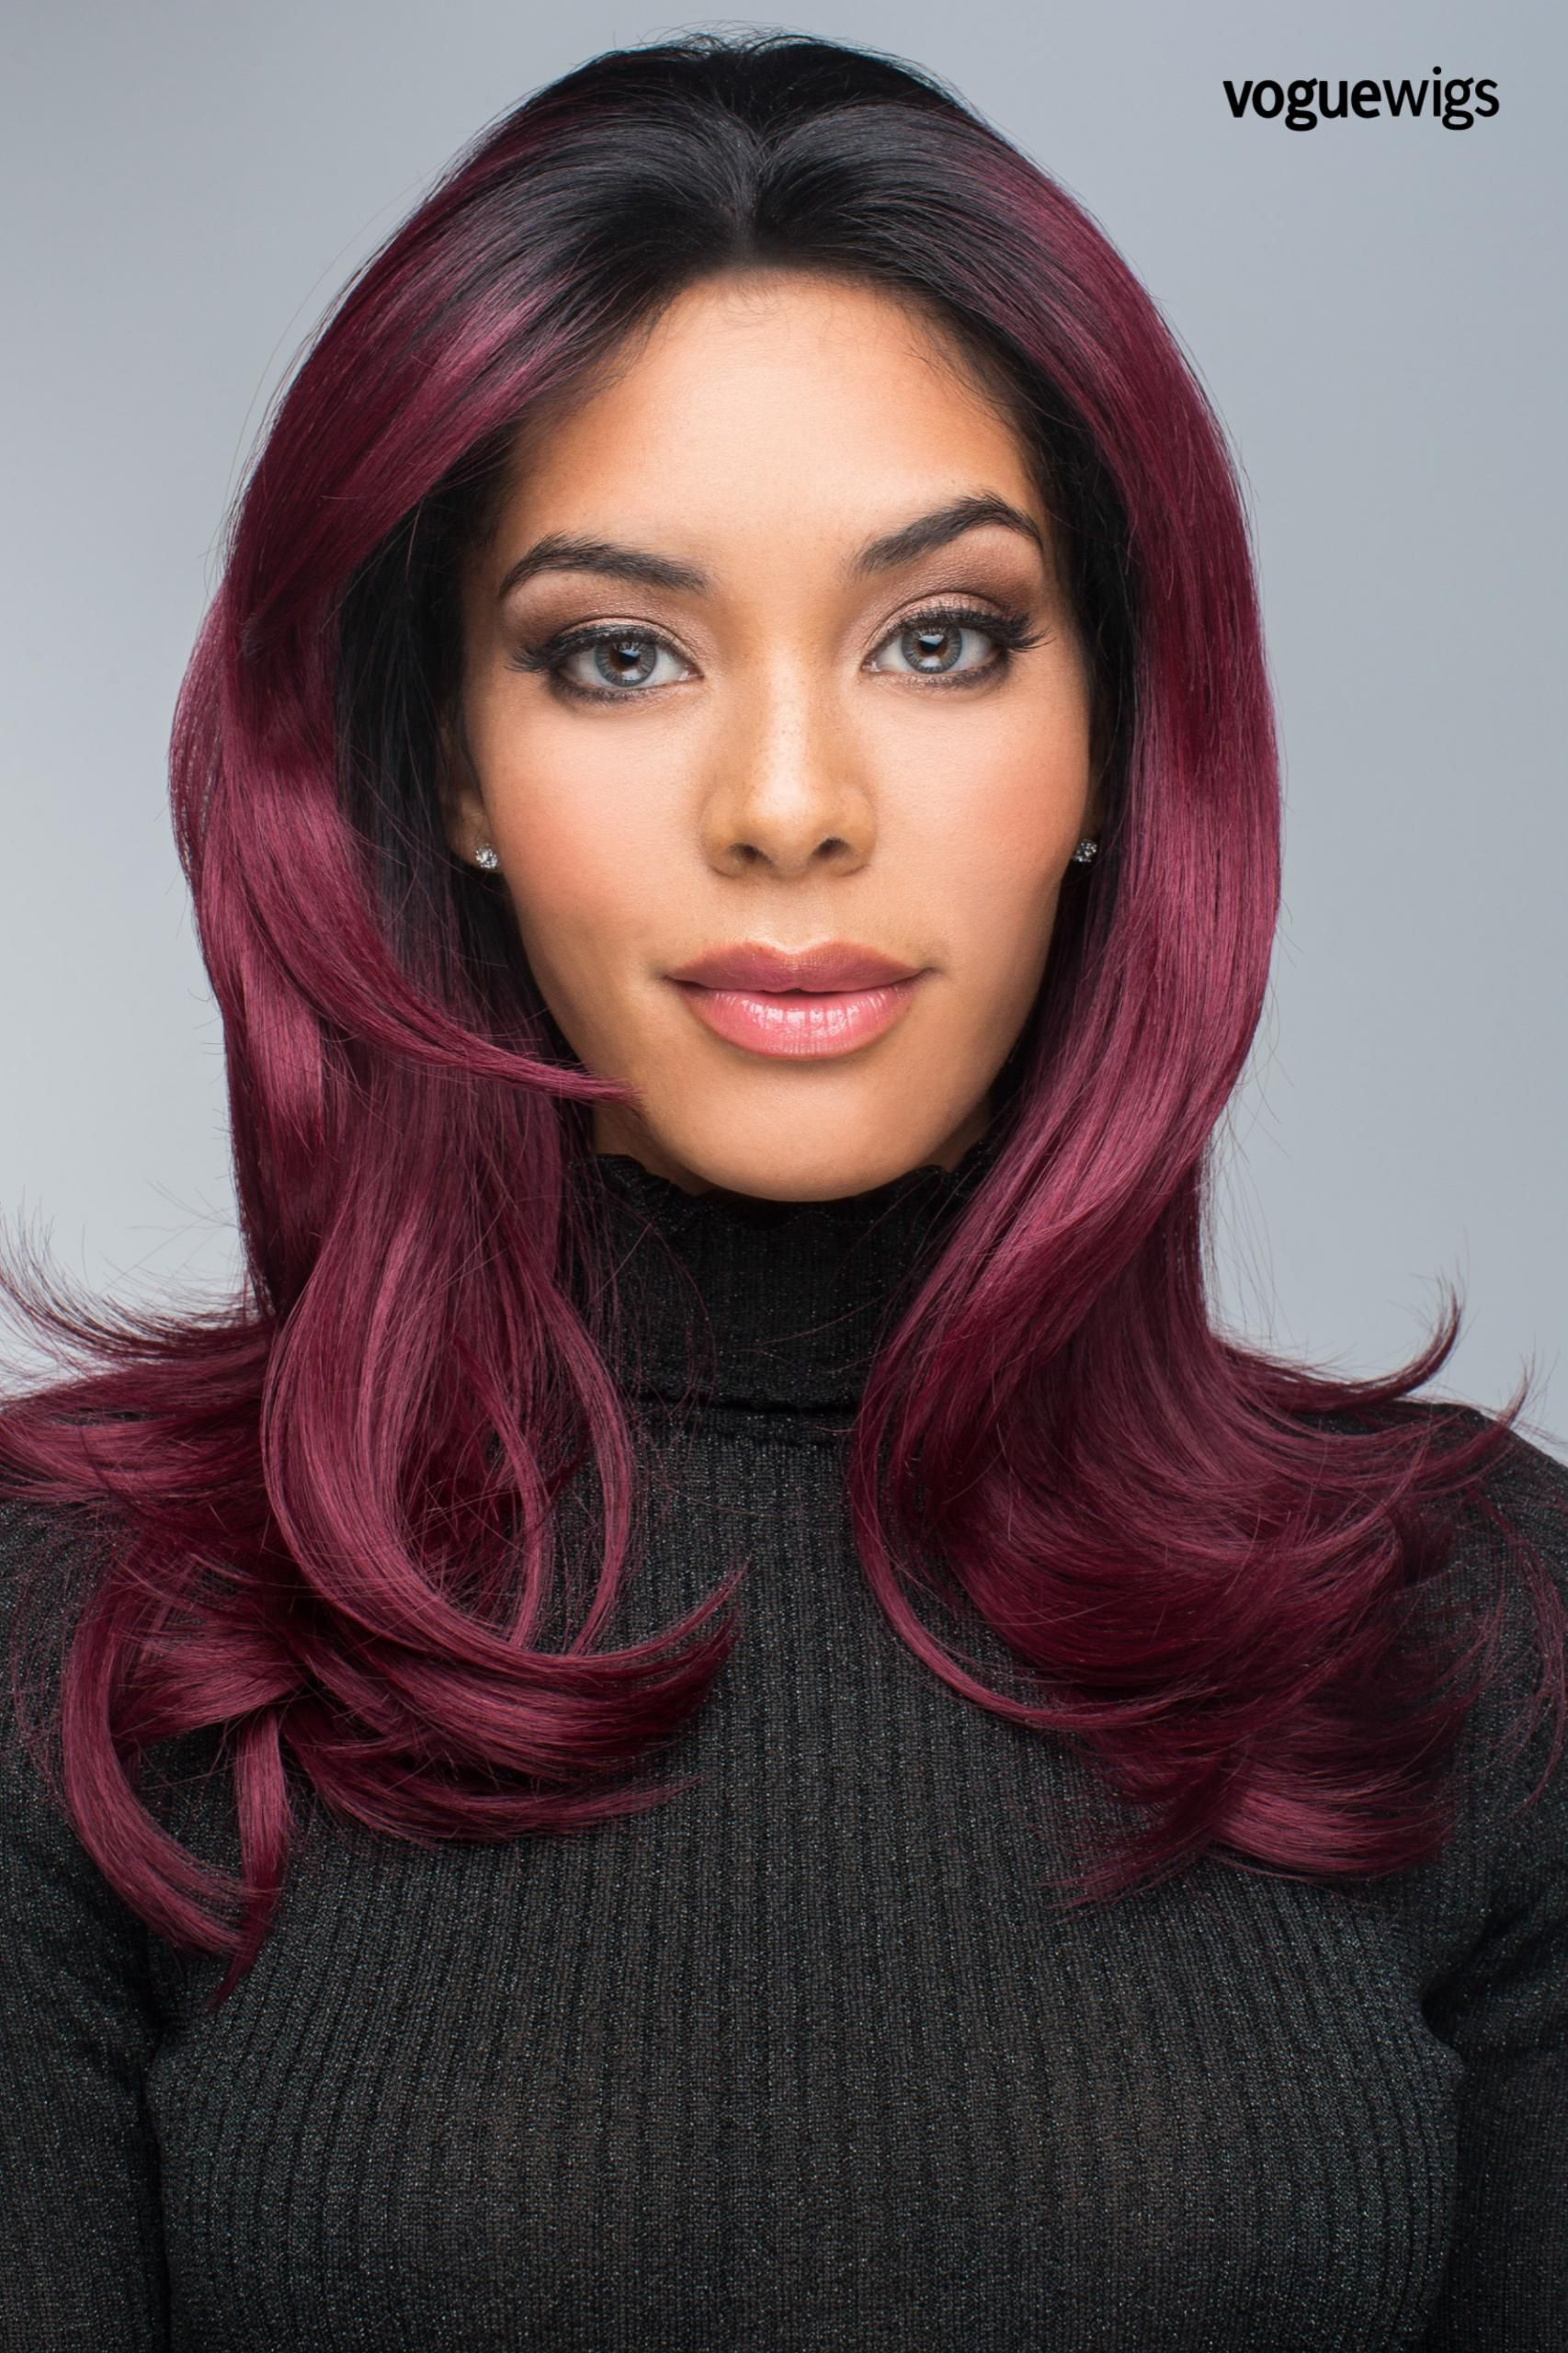 The Red Carpet Lace Front Wig By Revlon Bold Is An Extra Long Layered Style That Frames The Face Beautiful Lace Front Wigs Hair Pieces Hairstyles For Thin Hair